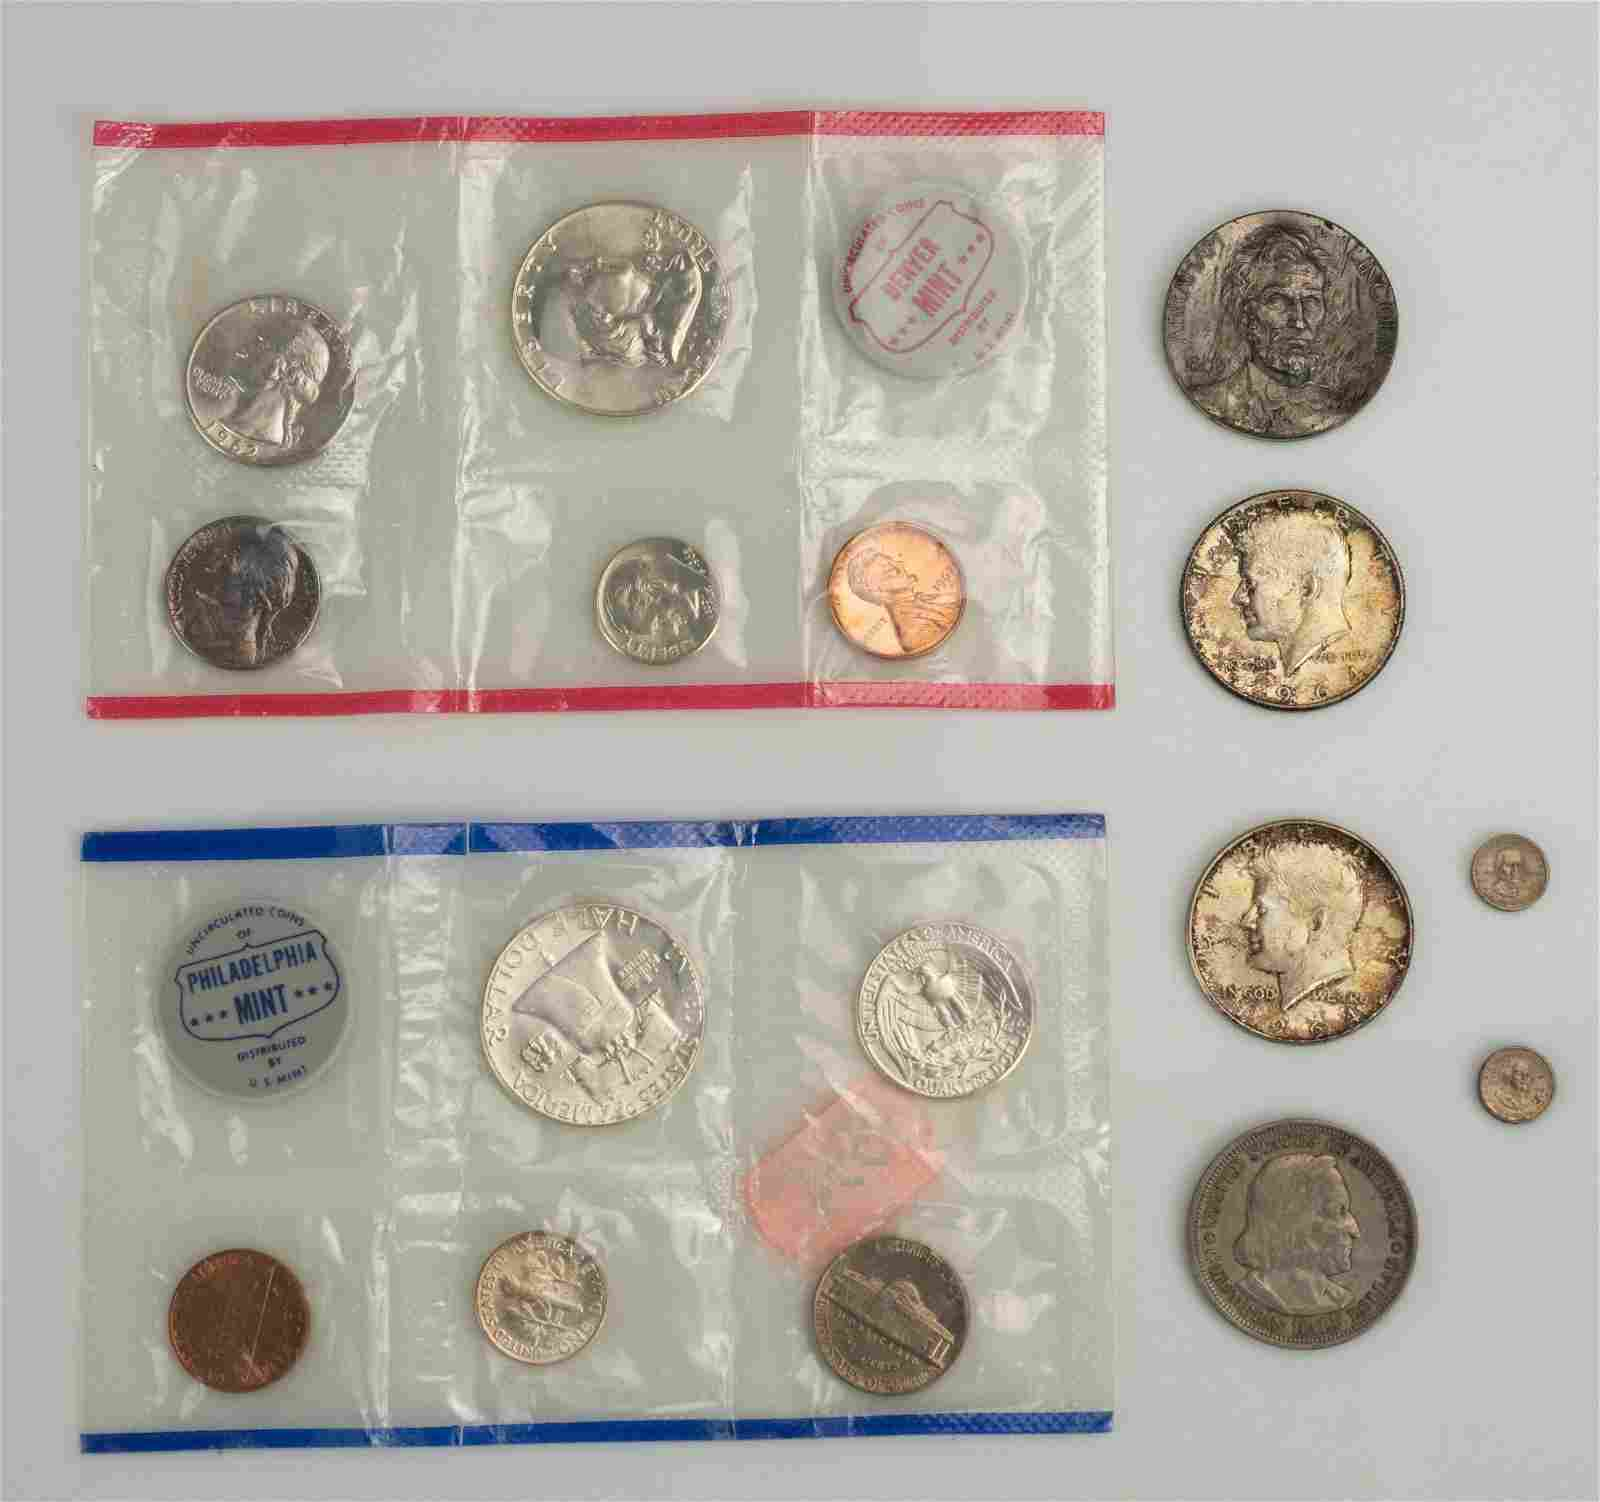 US Mint Sets, Silver Coins, Medallions